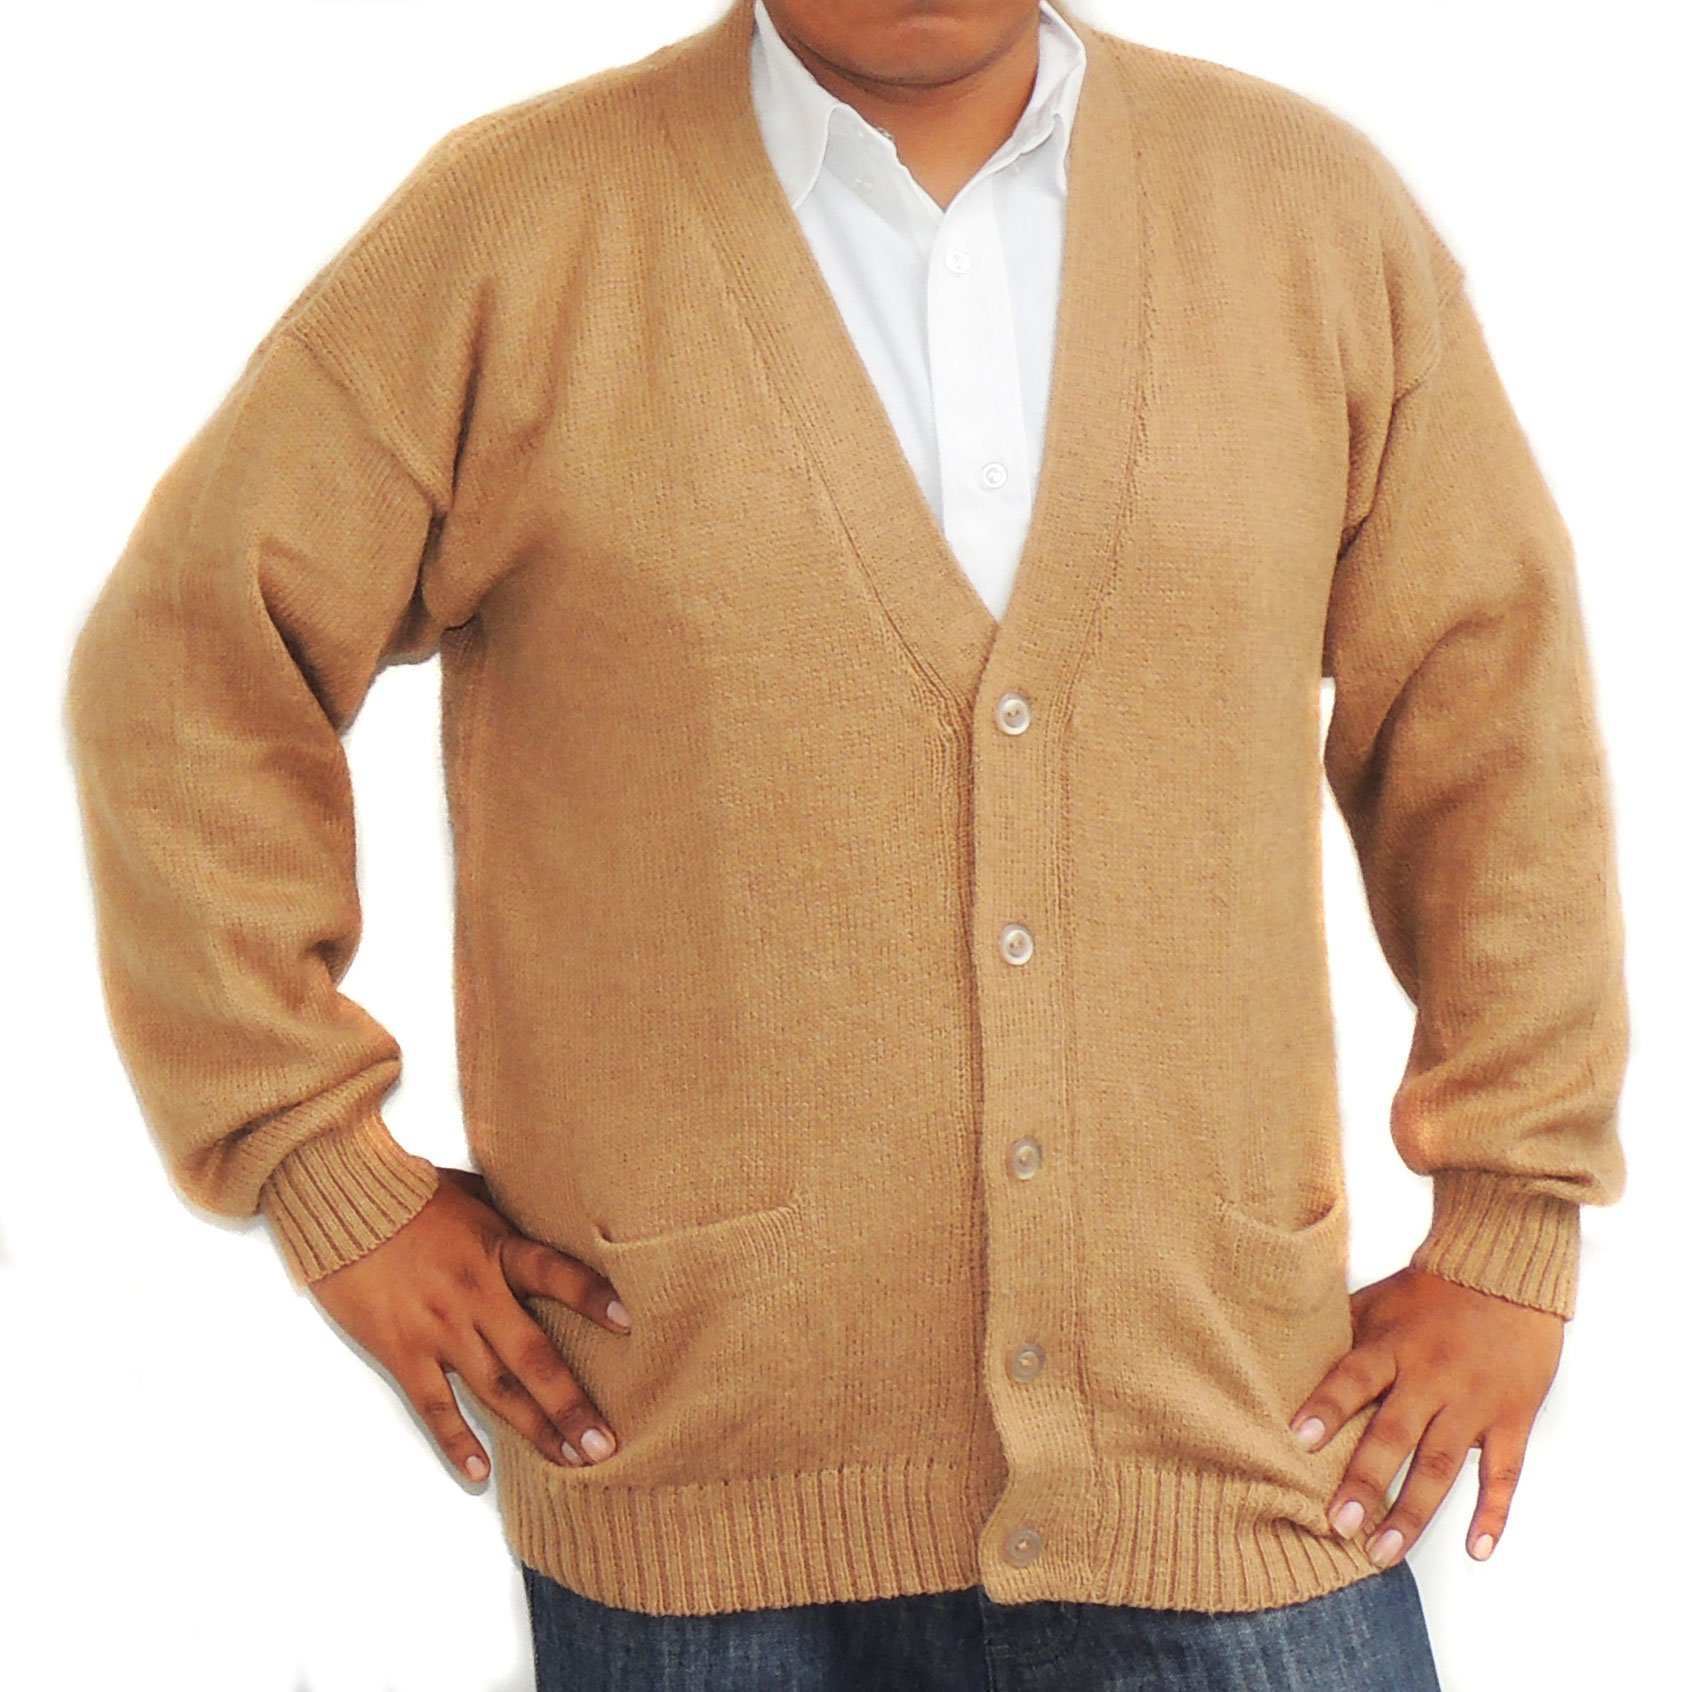 ALPACA CARDIGAN GOLF SWEATER JERSEY V neck buttons and Pockets made in PERU CAMEL L